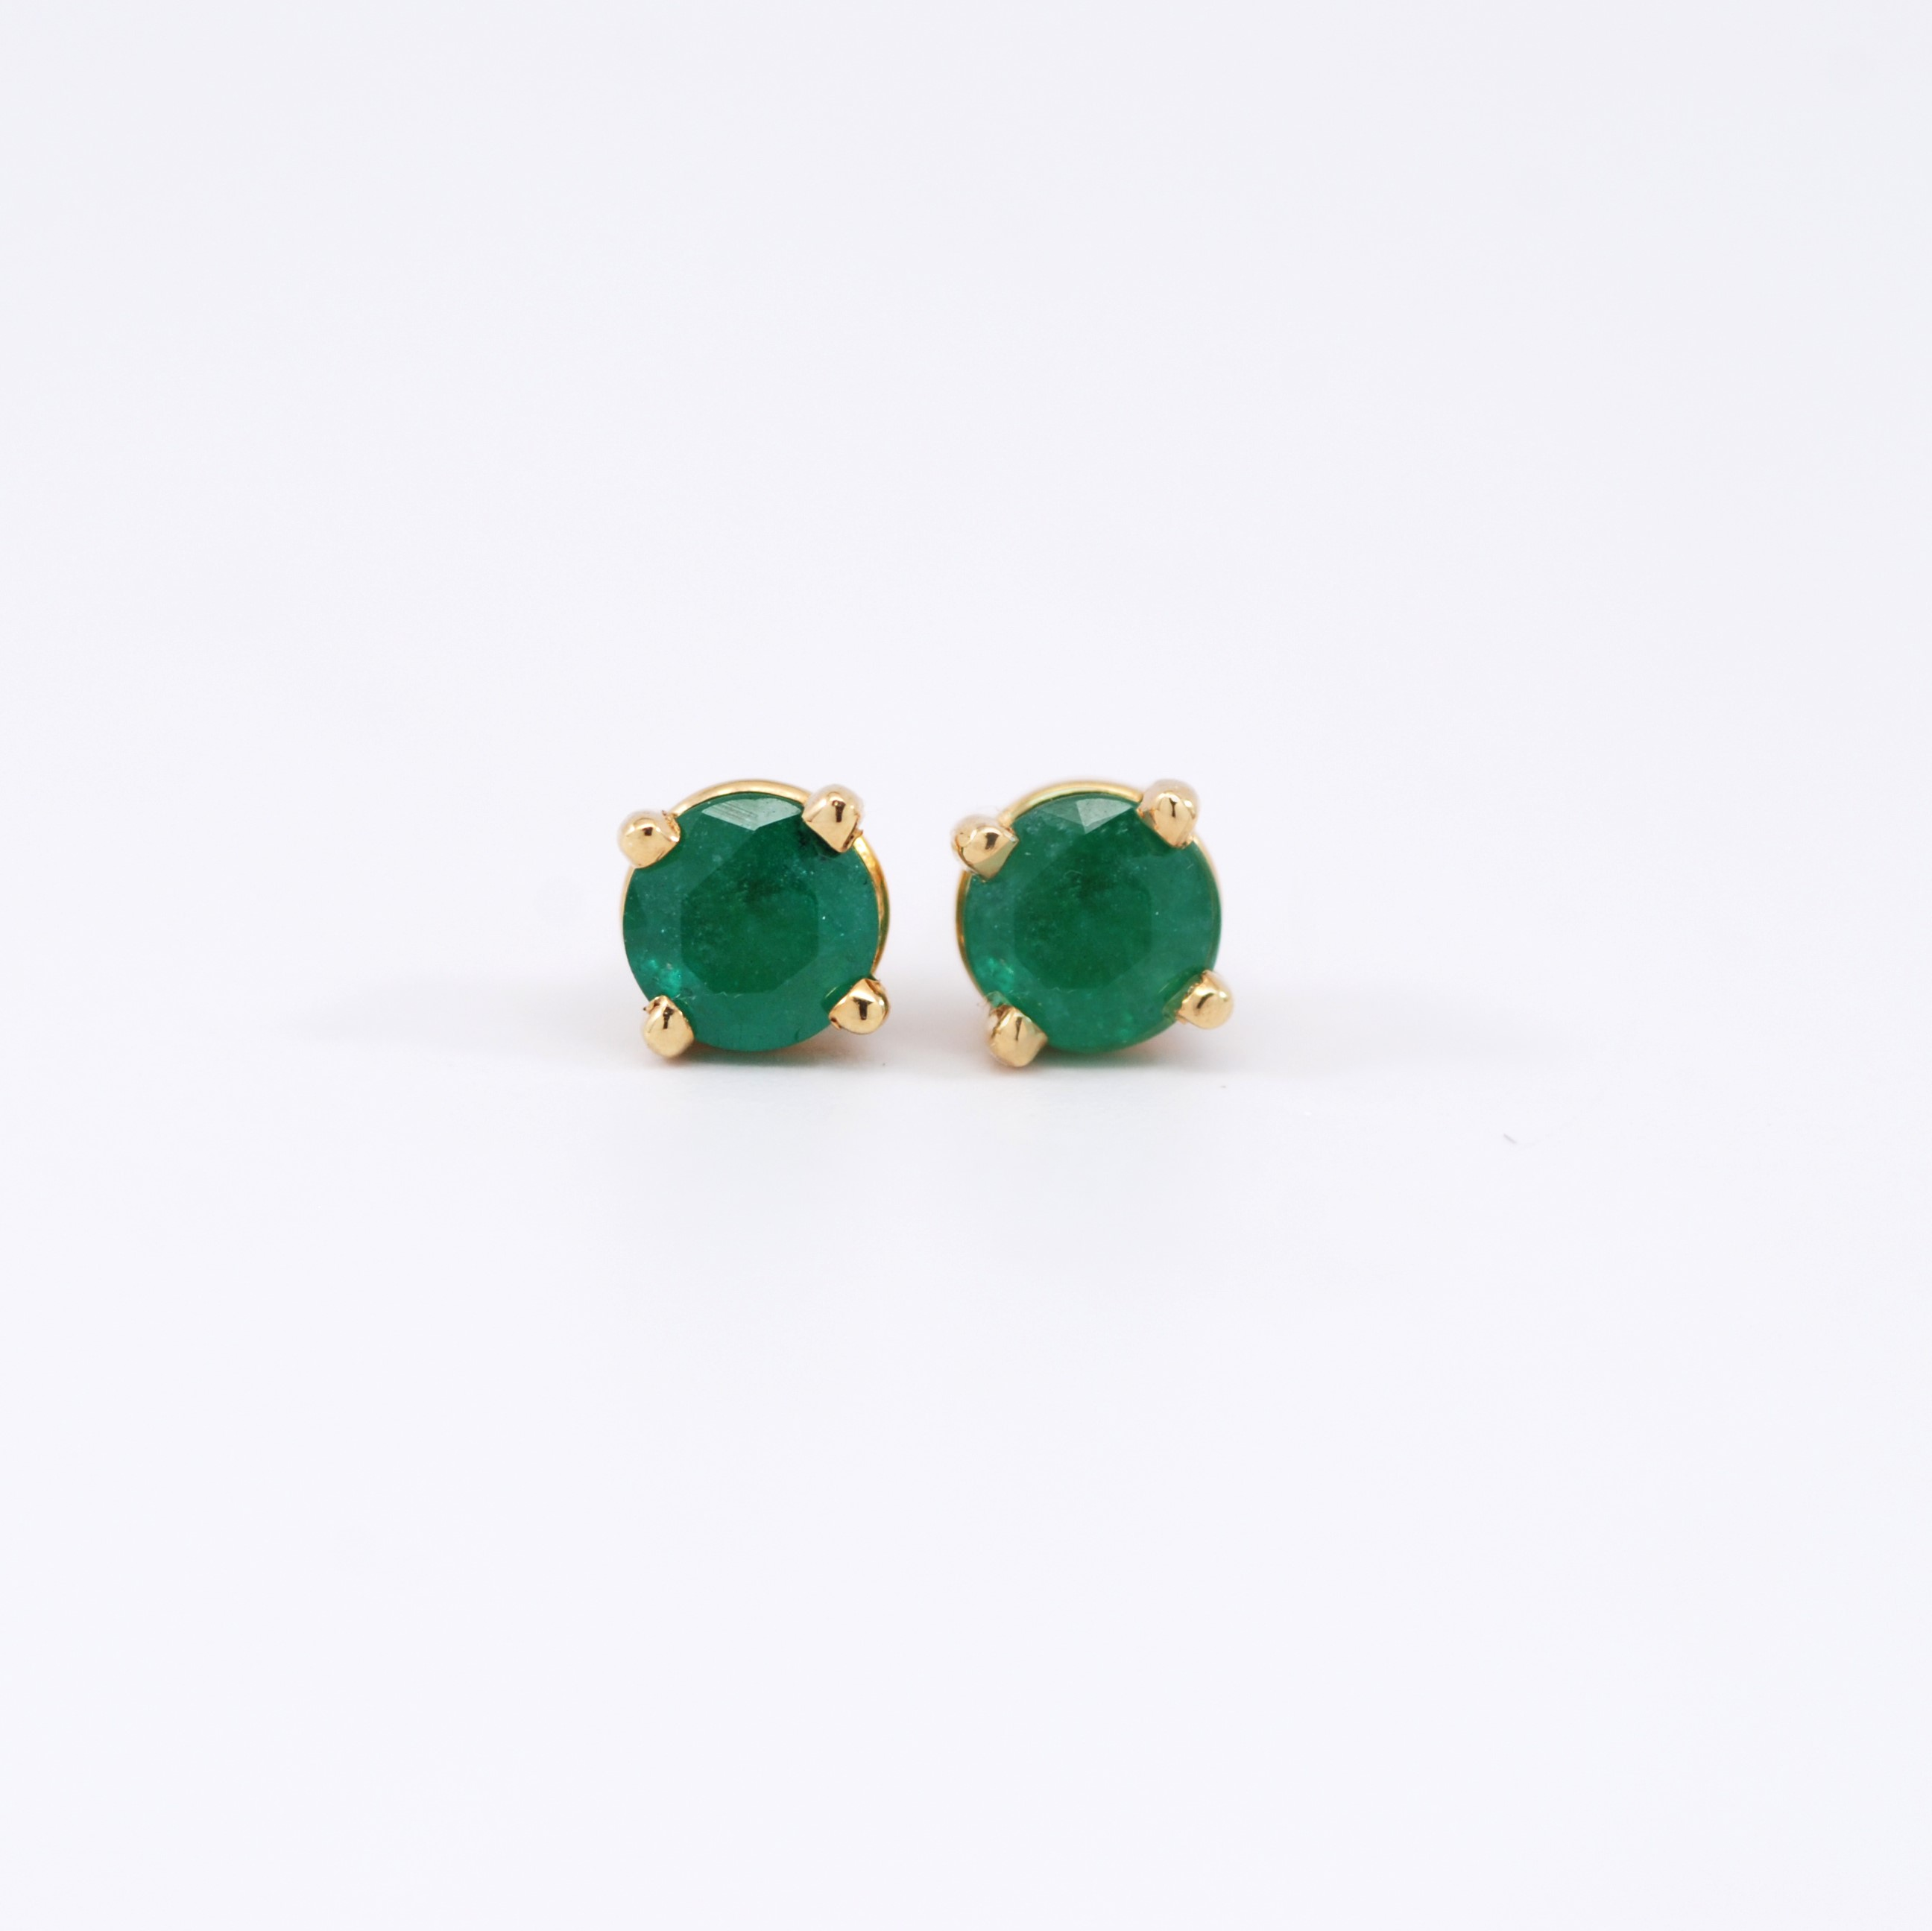 jewellery diamond earrings earring emeralds white diamonds vfj gold emerald